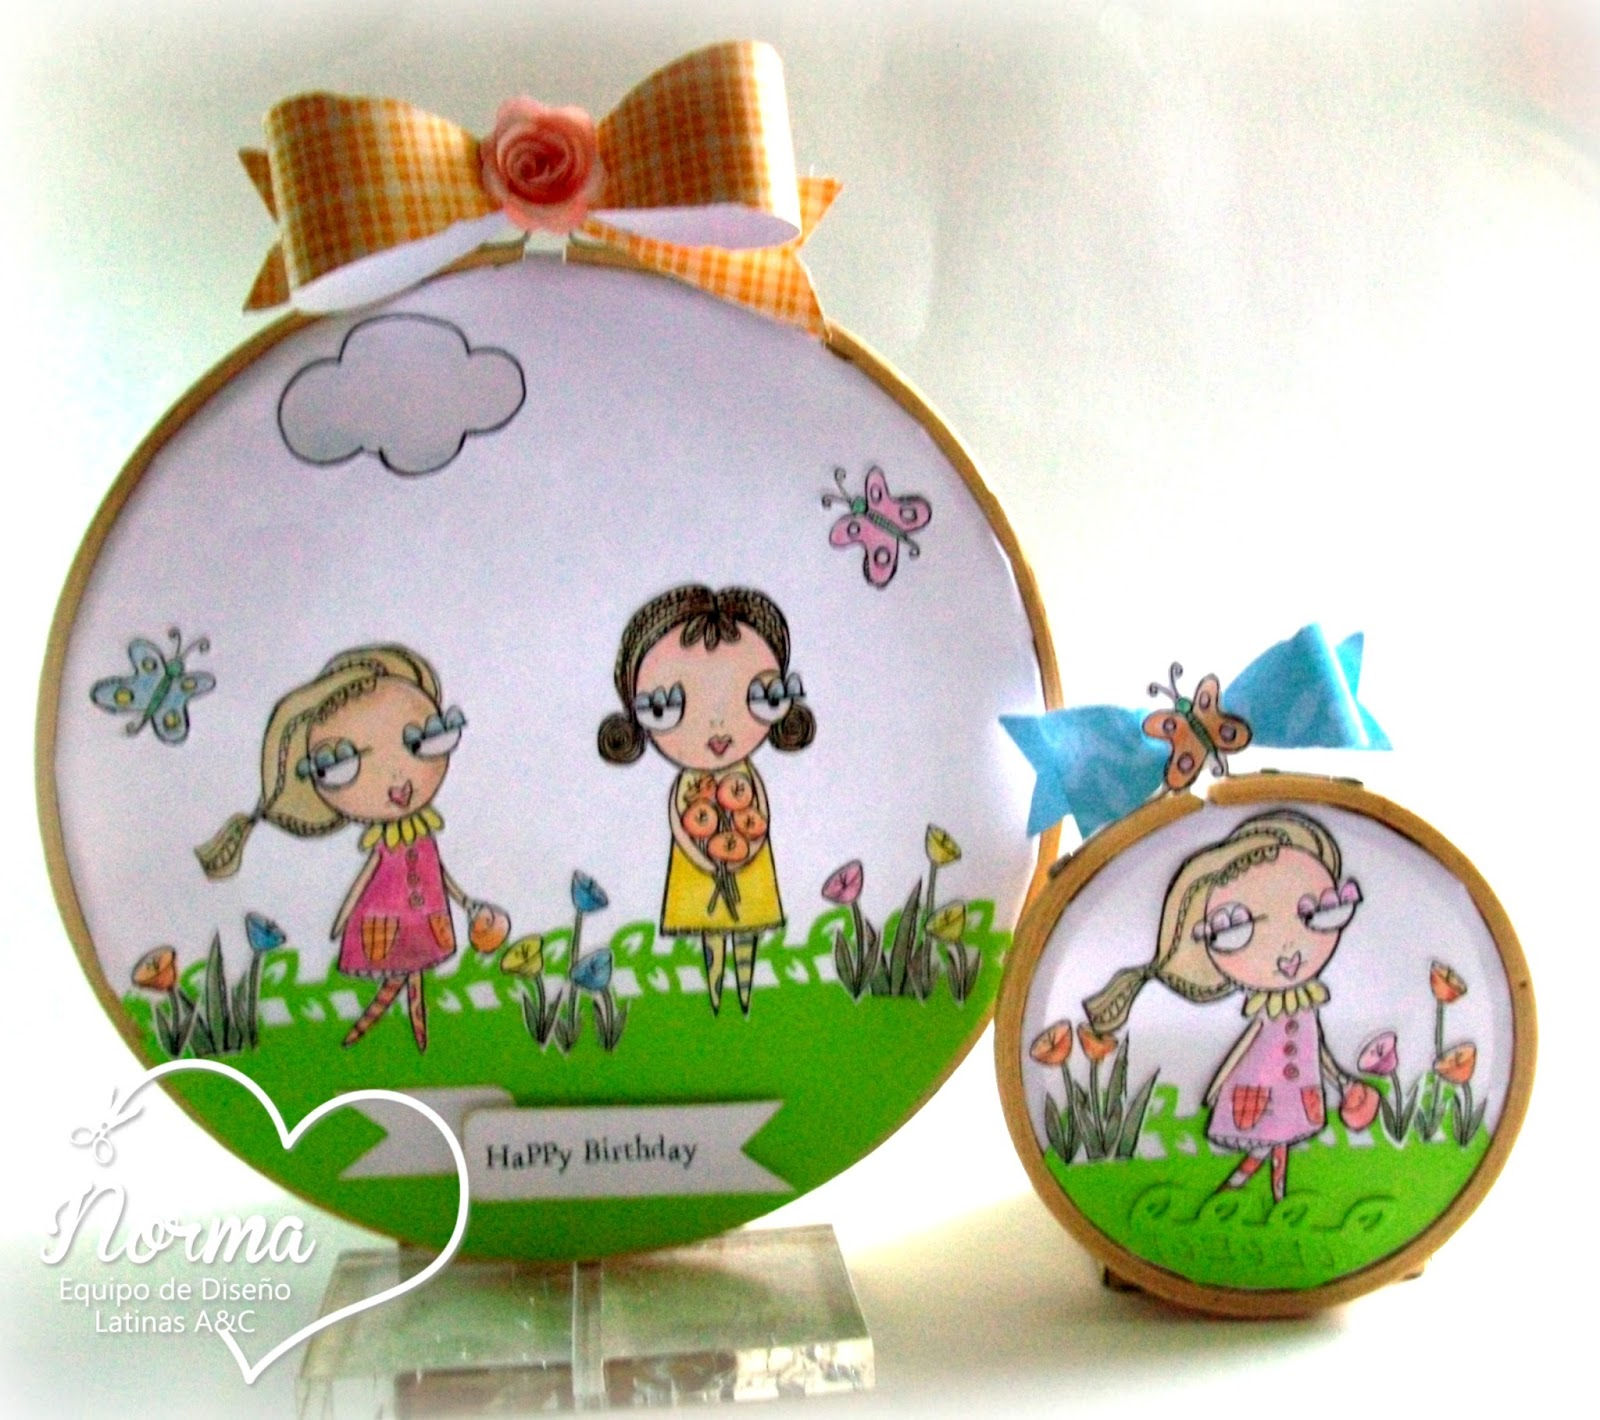 http://creatingandsharingit.blogspot.com/2015/03/tutorial-29-de-latinas-arts-and-crafts.html